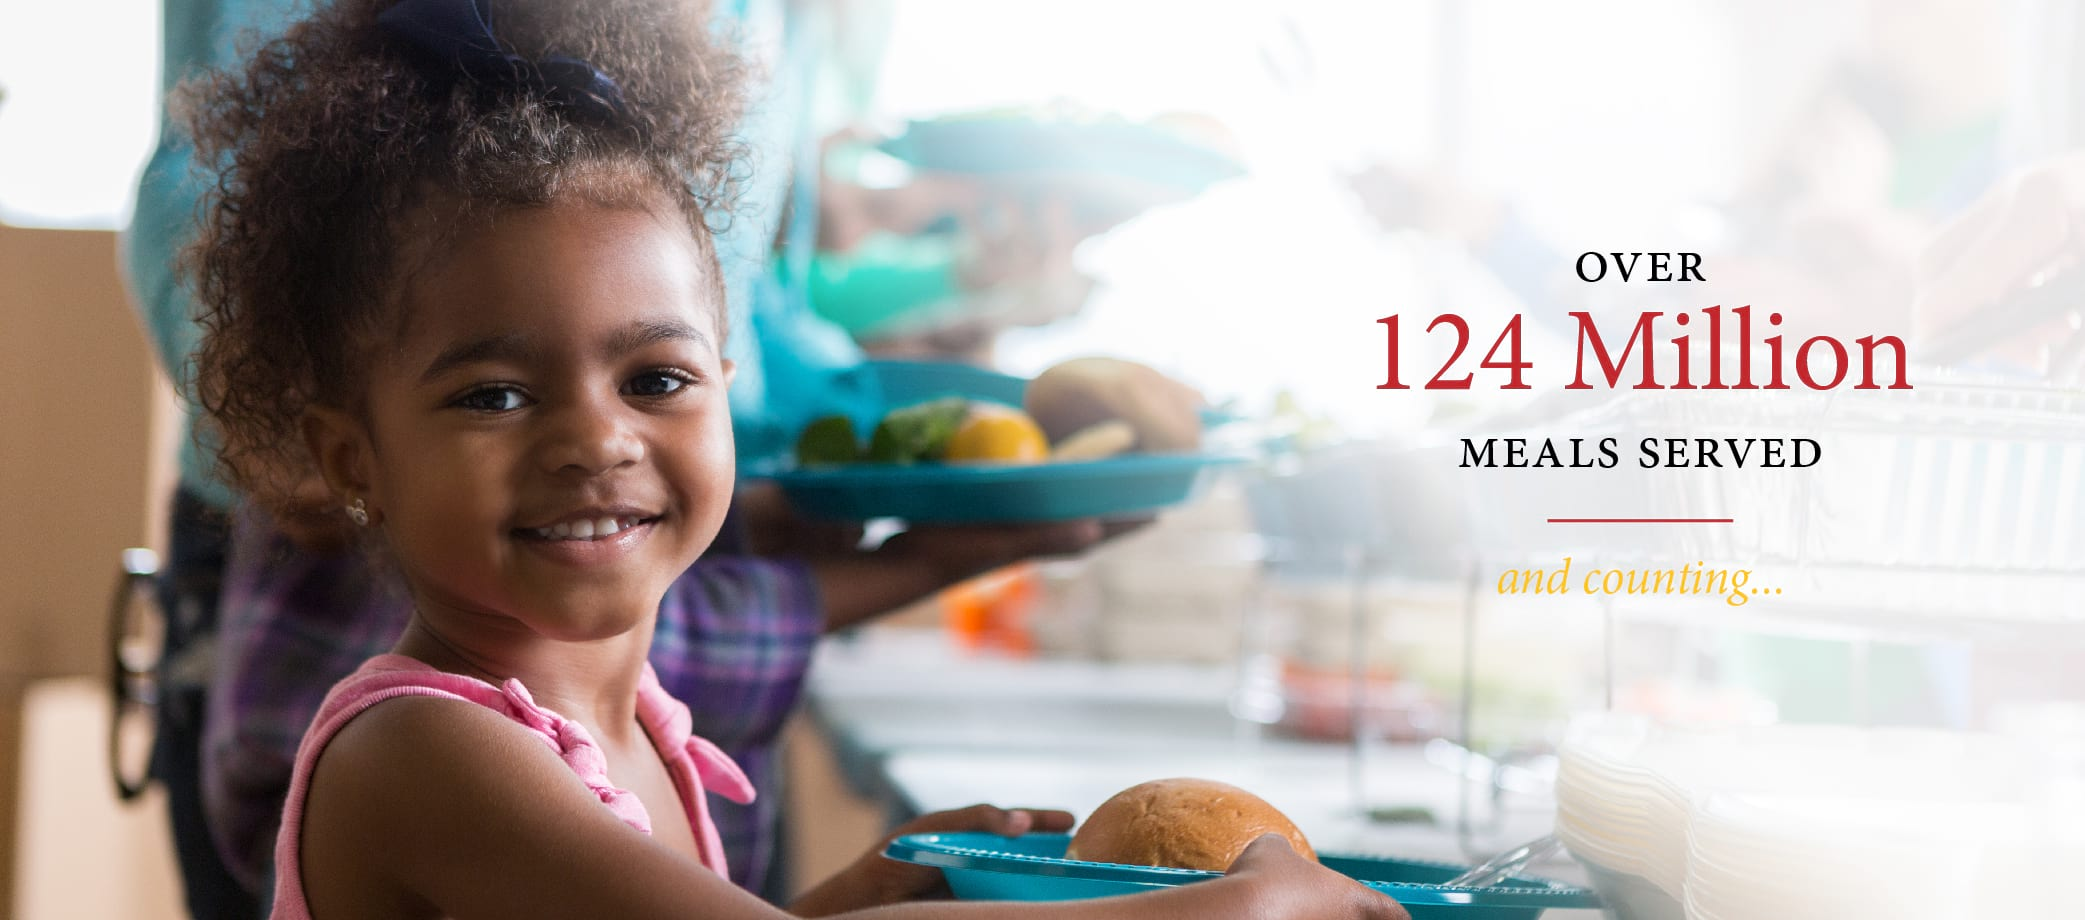 Over 124 Million Meals Served and Counting...